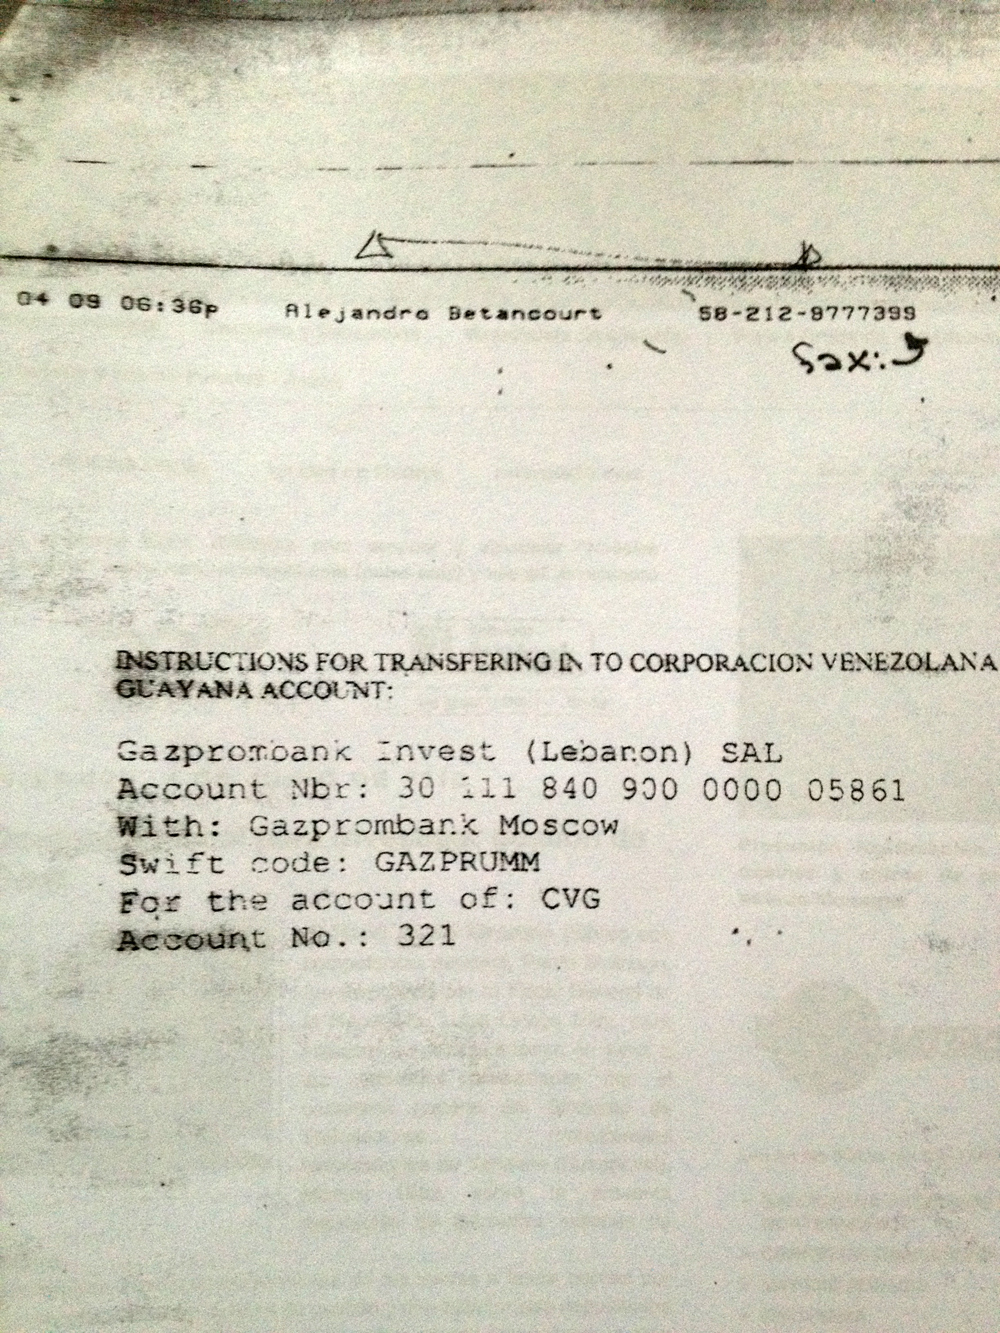 whatever happened to cvg s 500 million held in gazprombank infodio london 01 12 12 the image on the right is the first page of what sources alleged to be a two page fax sent by alejandro betancourt to buyers of